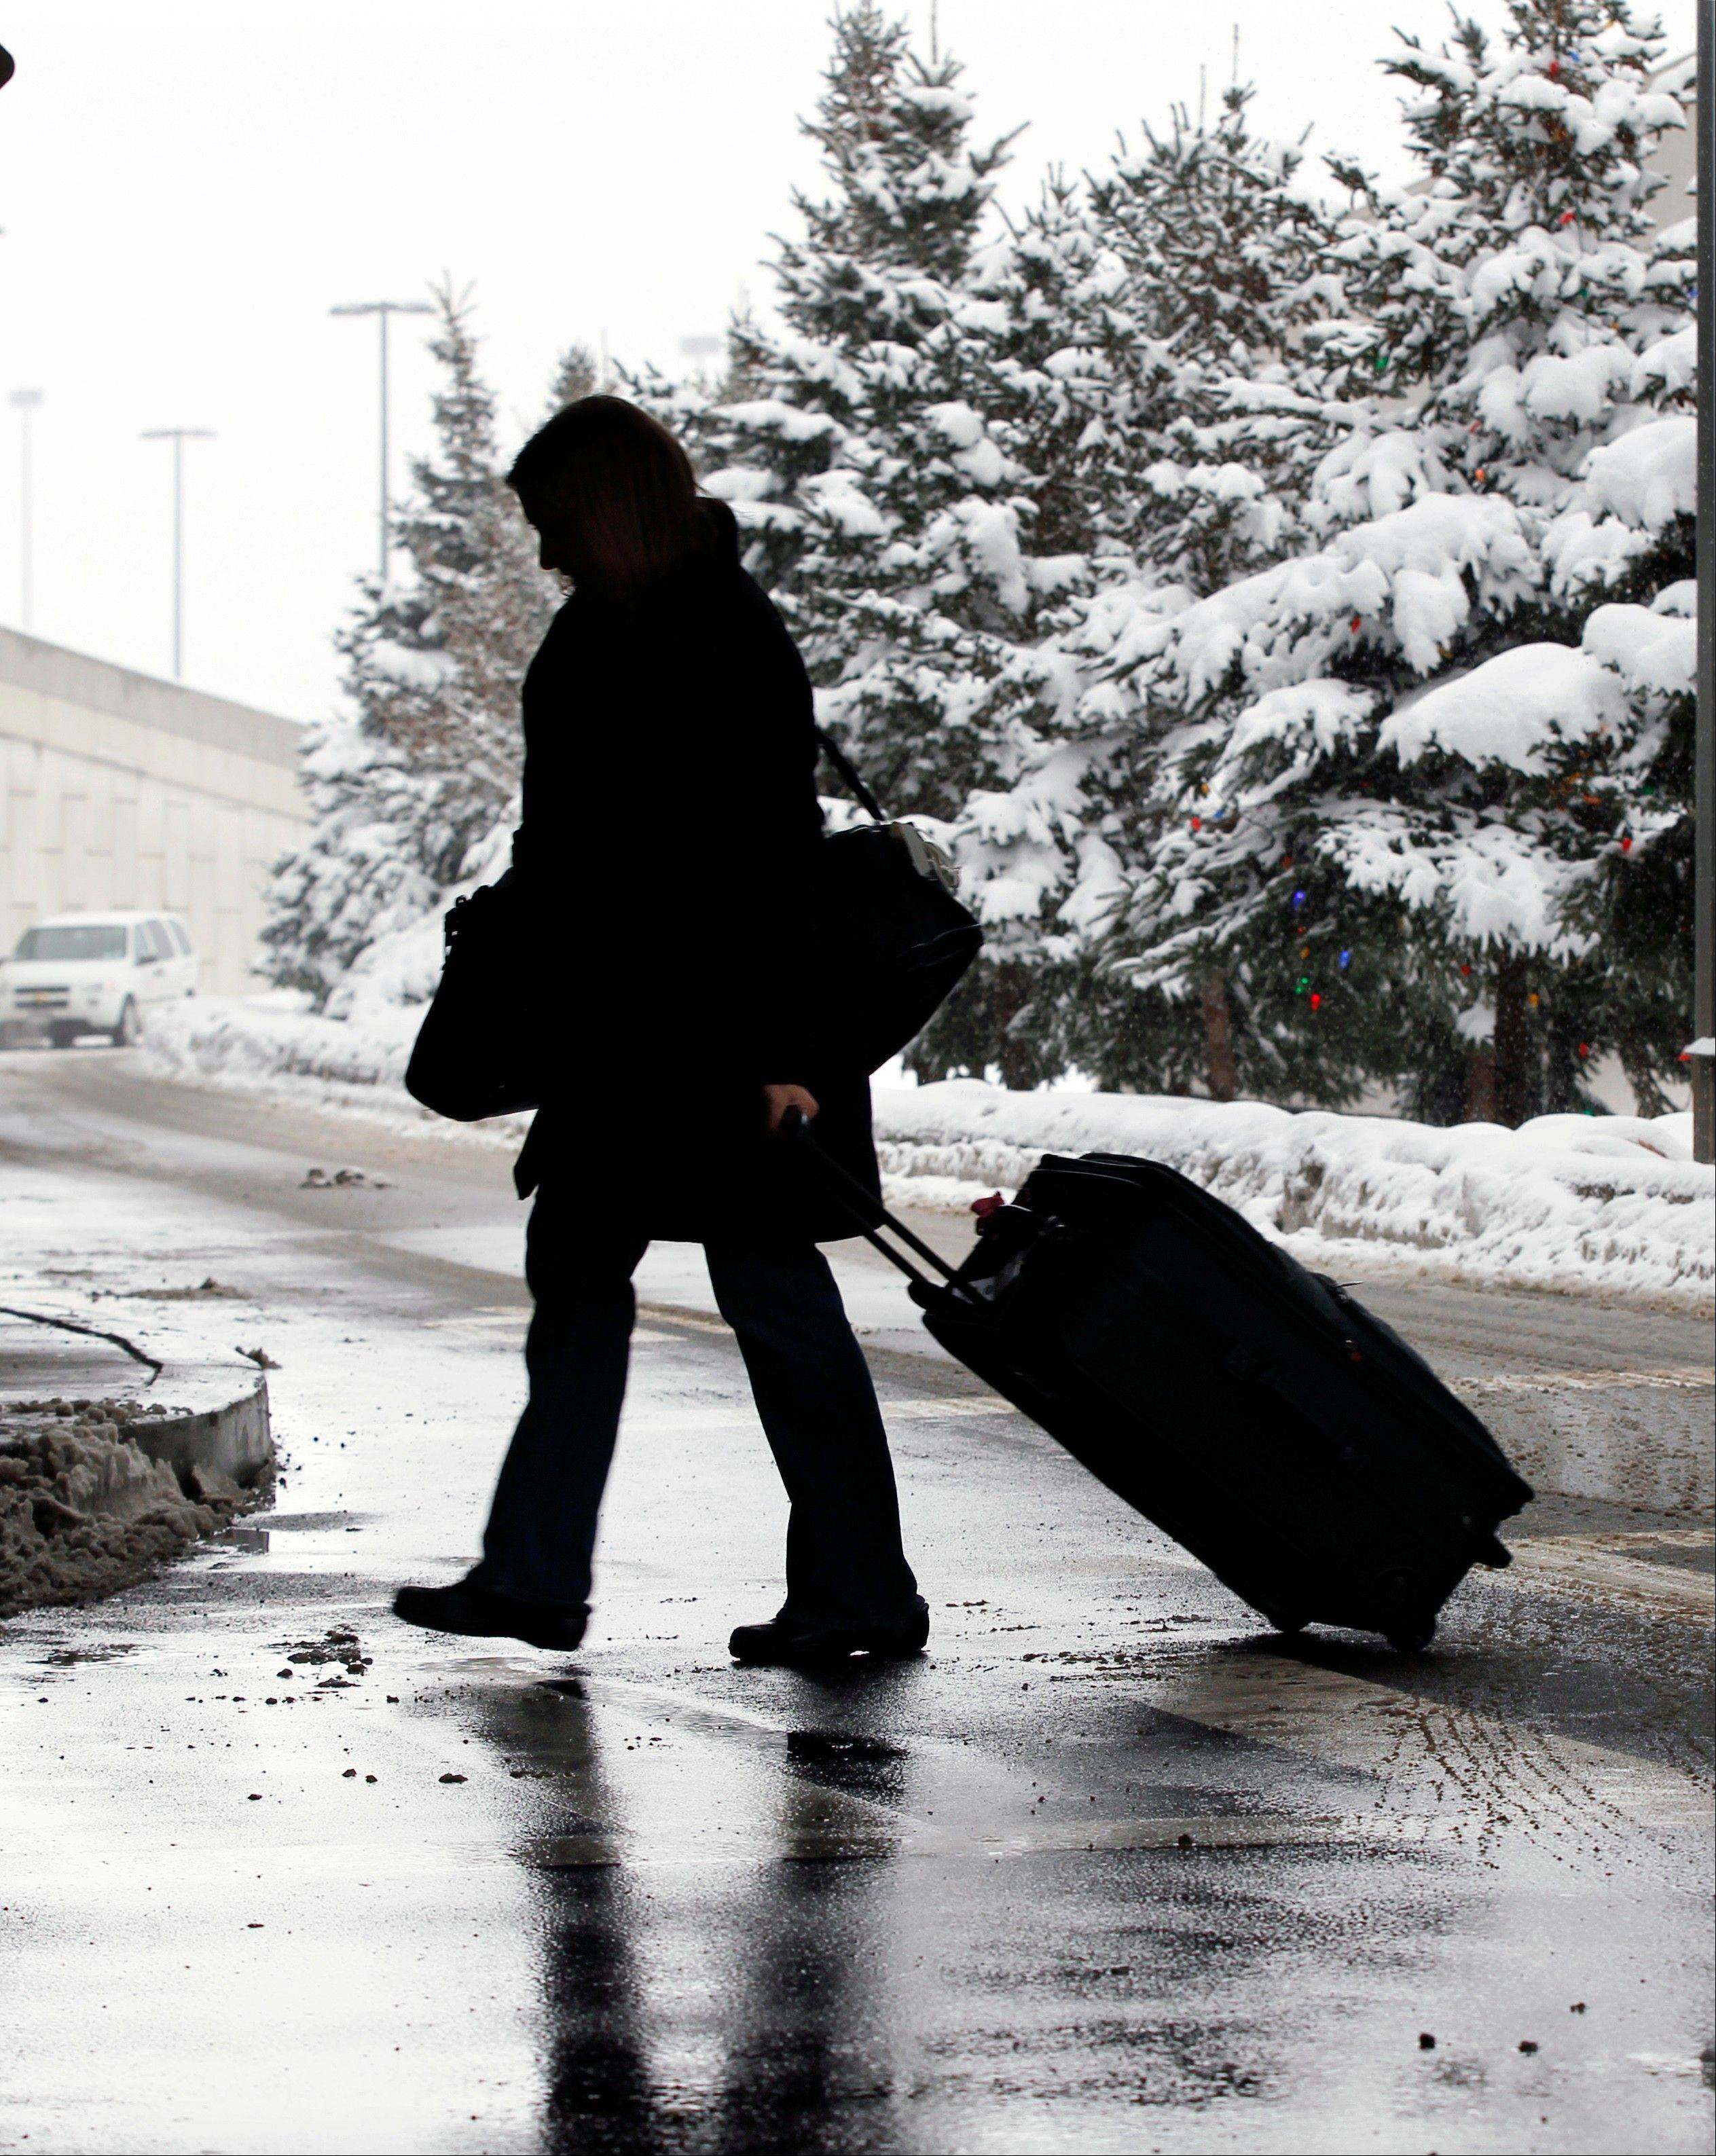 A person walks in a snowfall Saturday at Buffalo Niagara International Airport in Buffalo, N.Y.